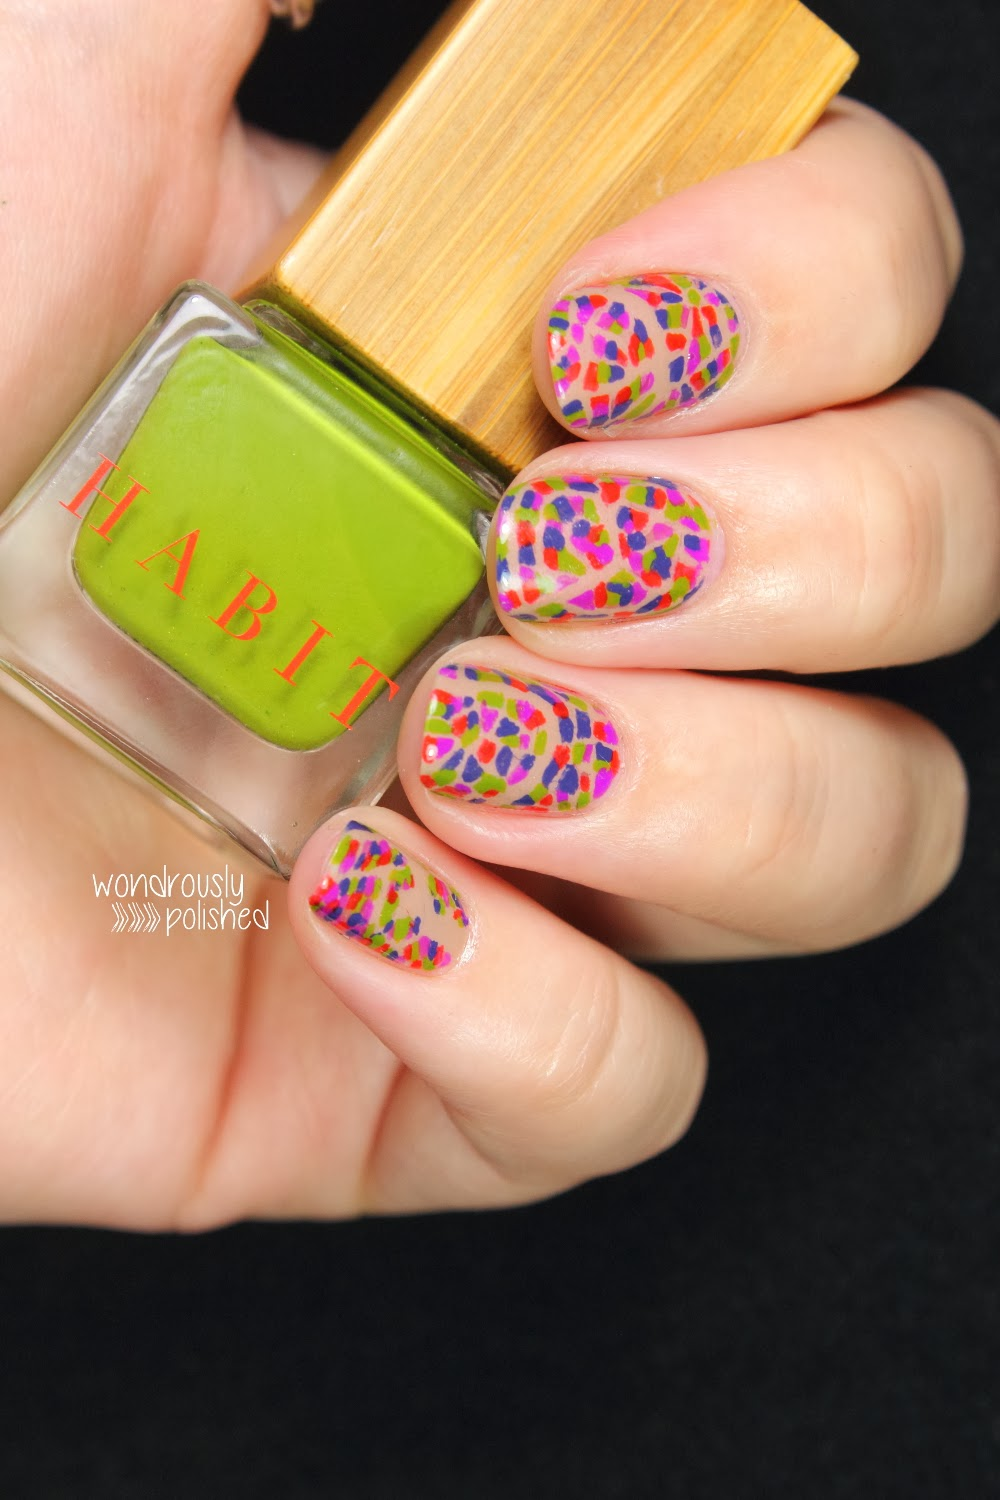 Wondrously Polished February Nail Art Challenge: Wondrously Polished: Habit Cosmetics